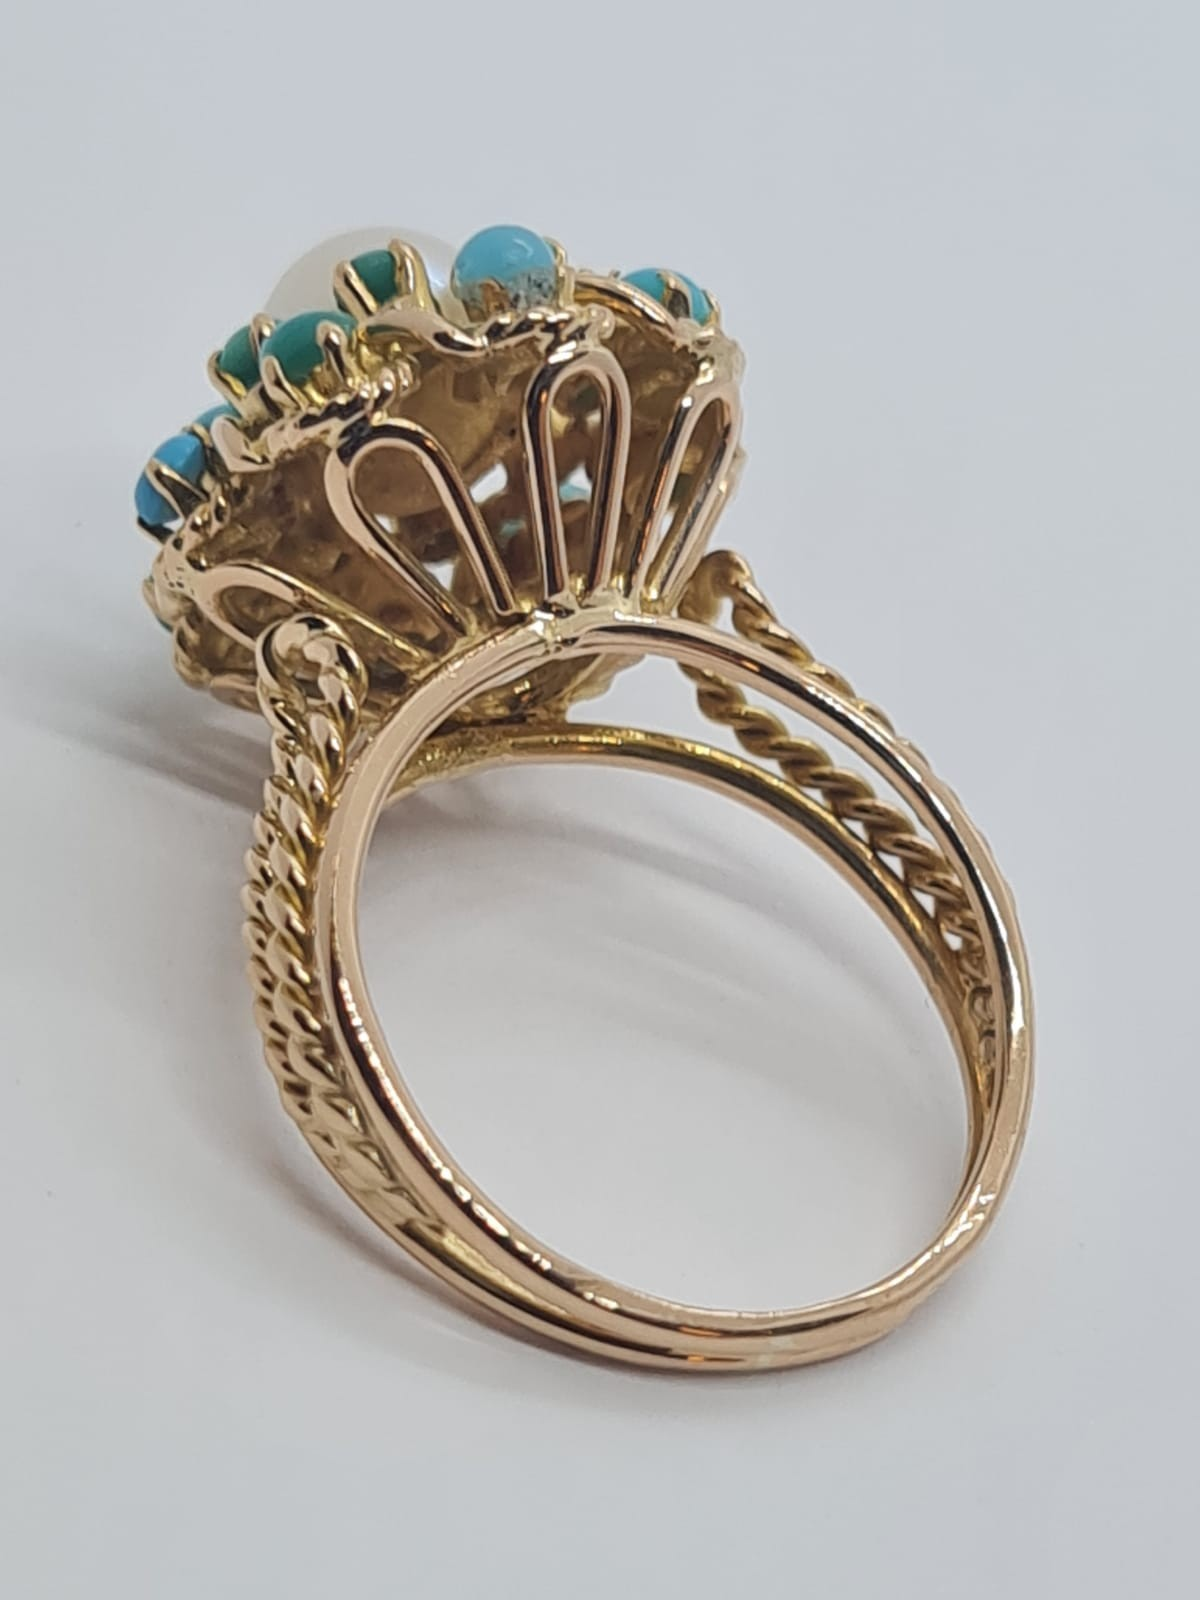 18k yellow gold TURQUISE AND PEARL CLUSTER RING, weight 5.3g and size J1/2 - Image 5 of 8